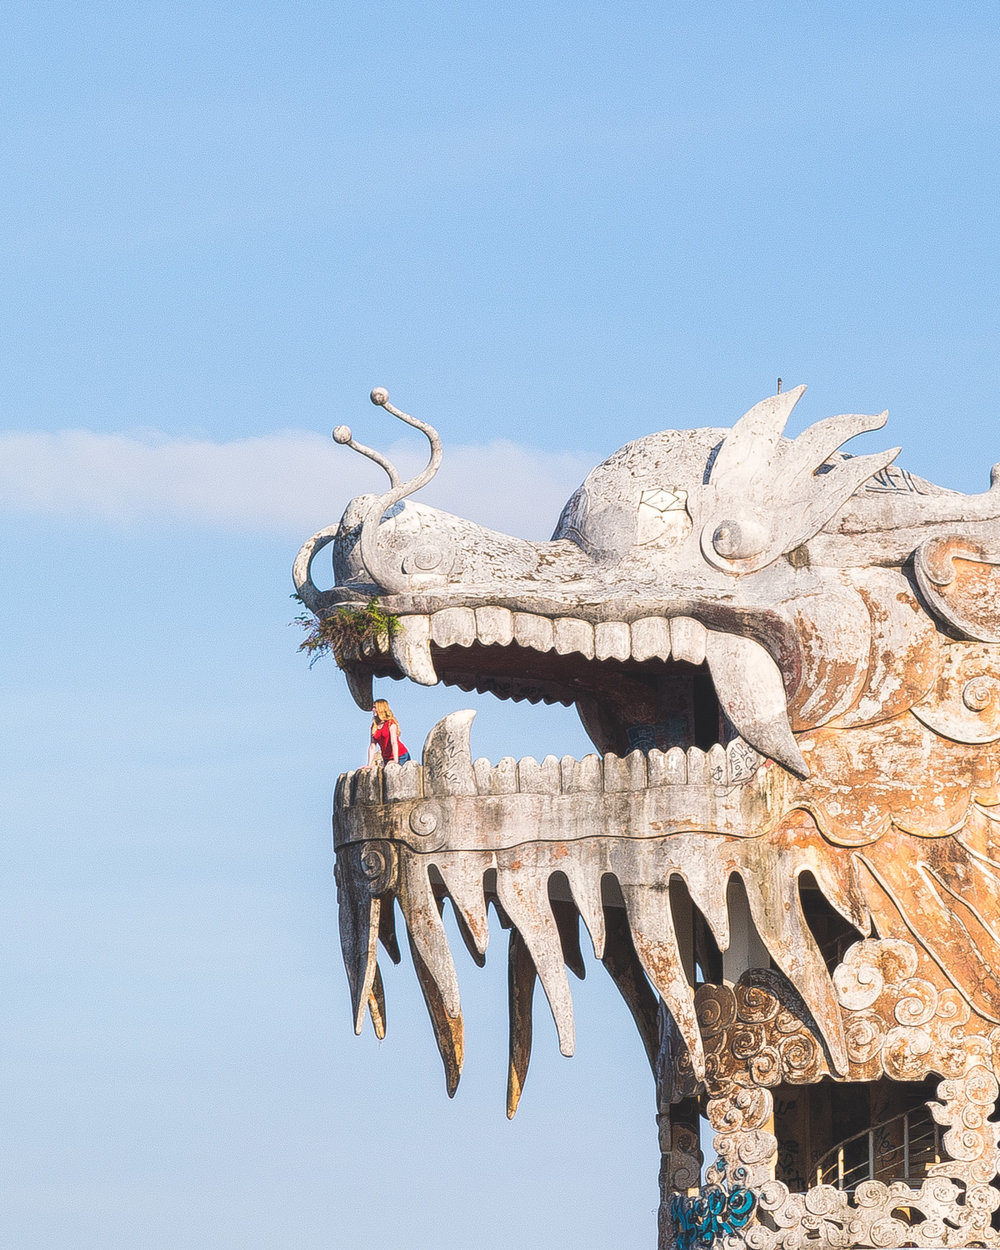 The abandoned water park in Hue - The dragon